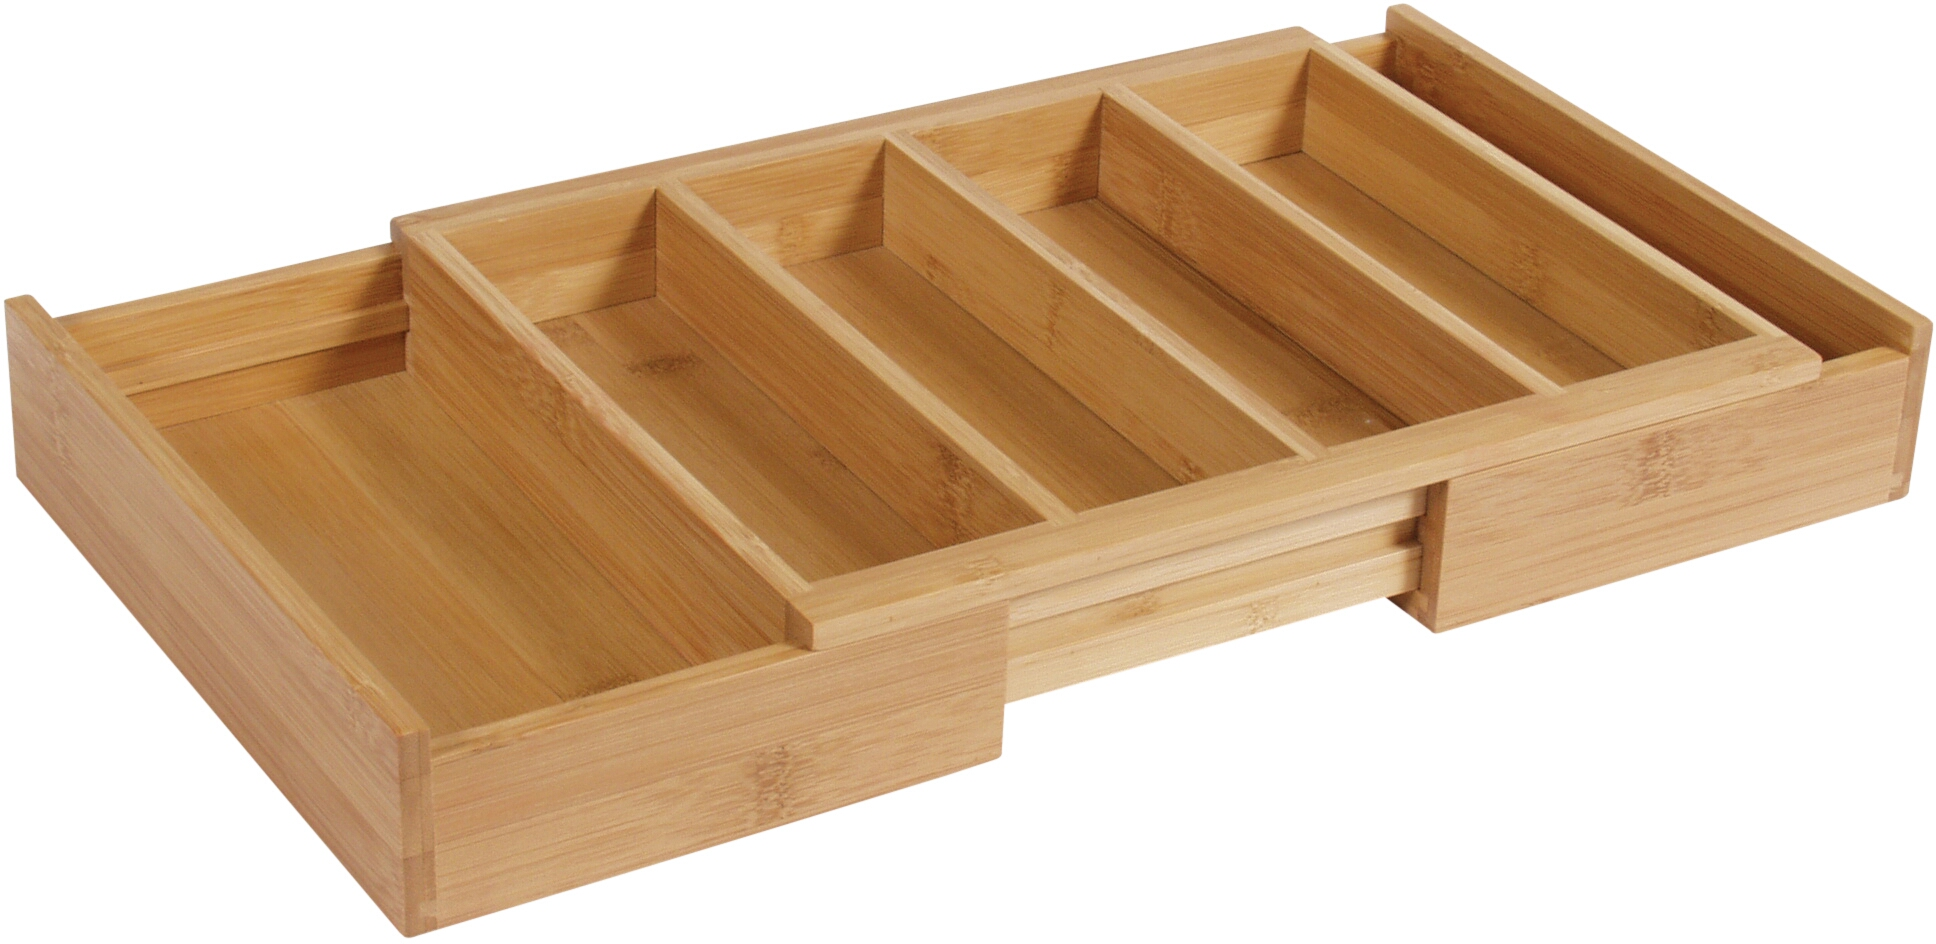 Island Bamboo Large Expanding Flatware Tray, 13 x 13 x 2 Inch